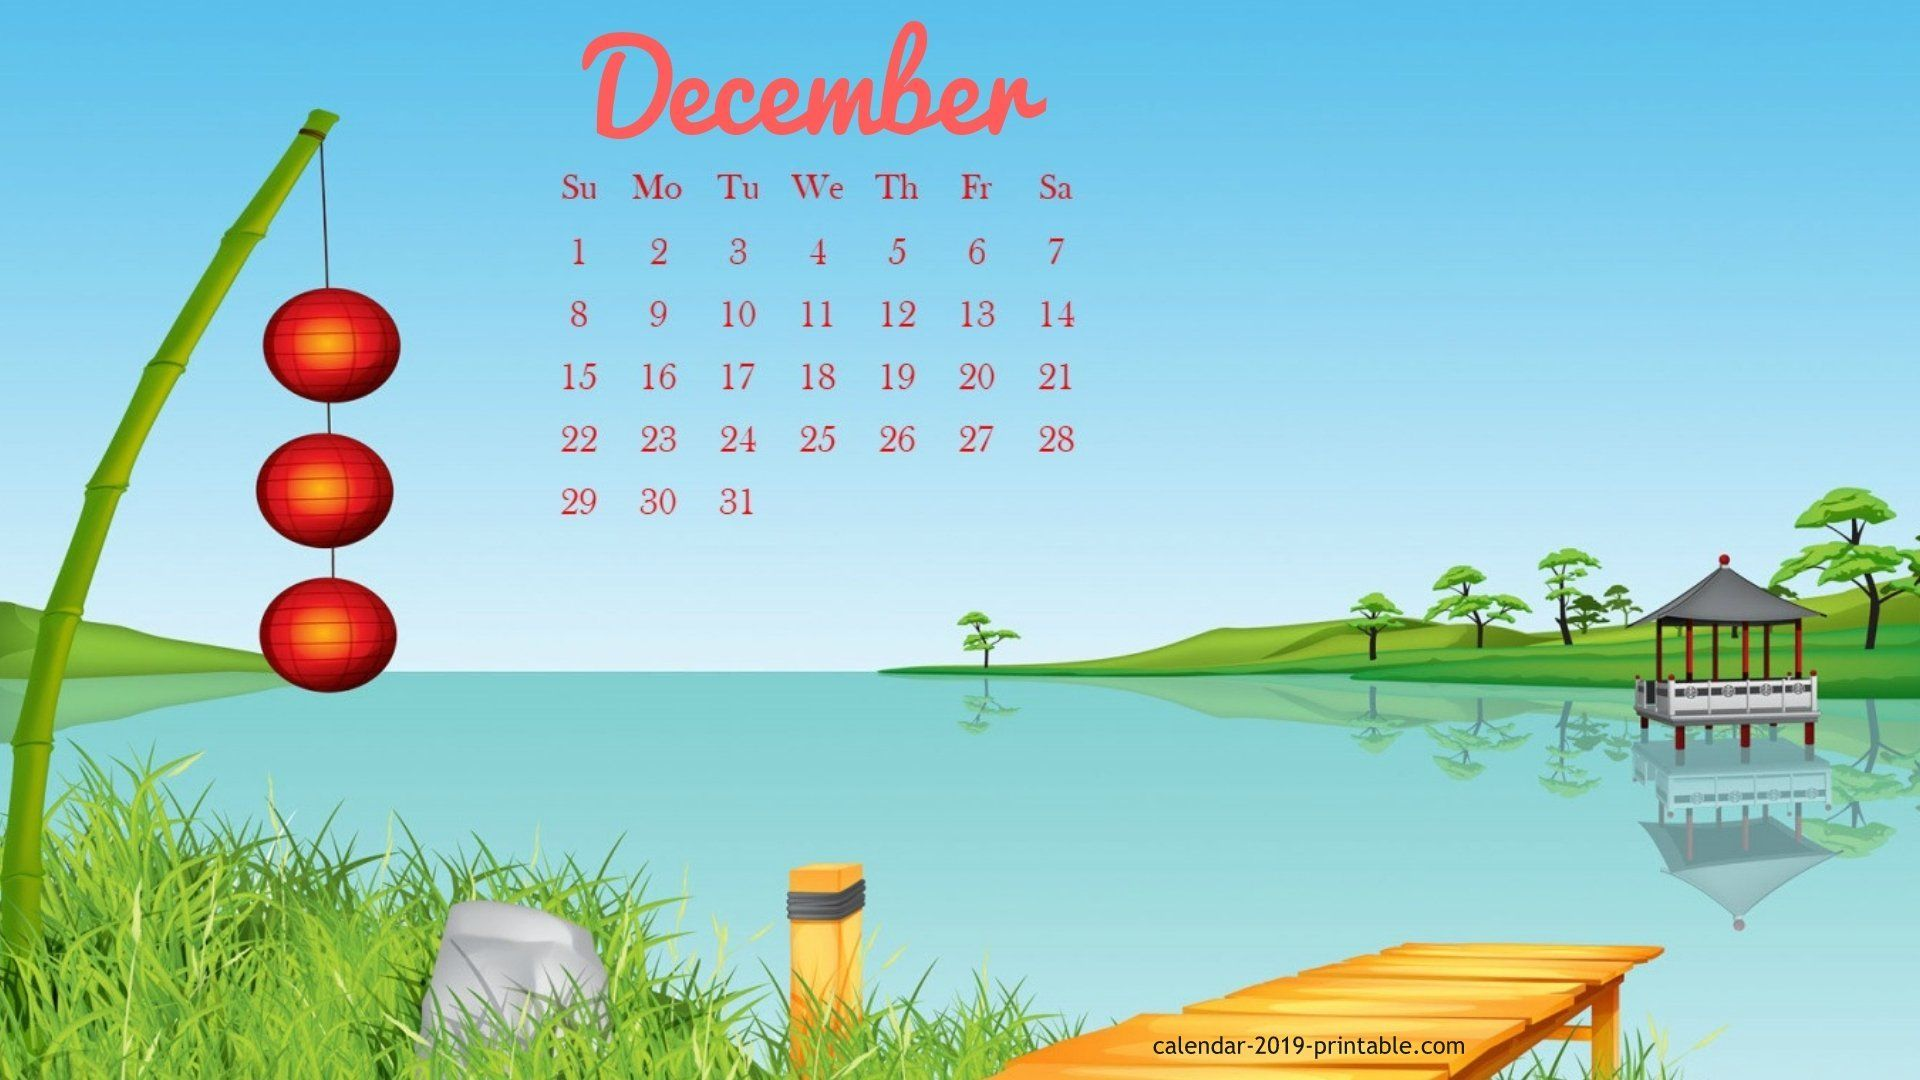 December 2019 Calendar Wallpaper Desktop december 2019 calendar wallpaper | 2019 Calendars | 2019 calendar